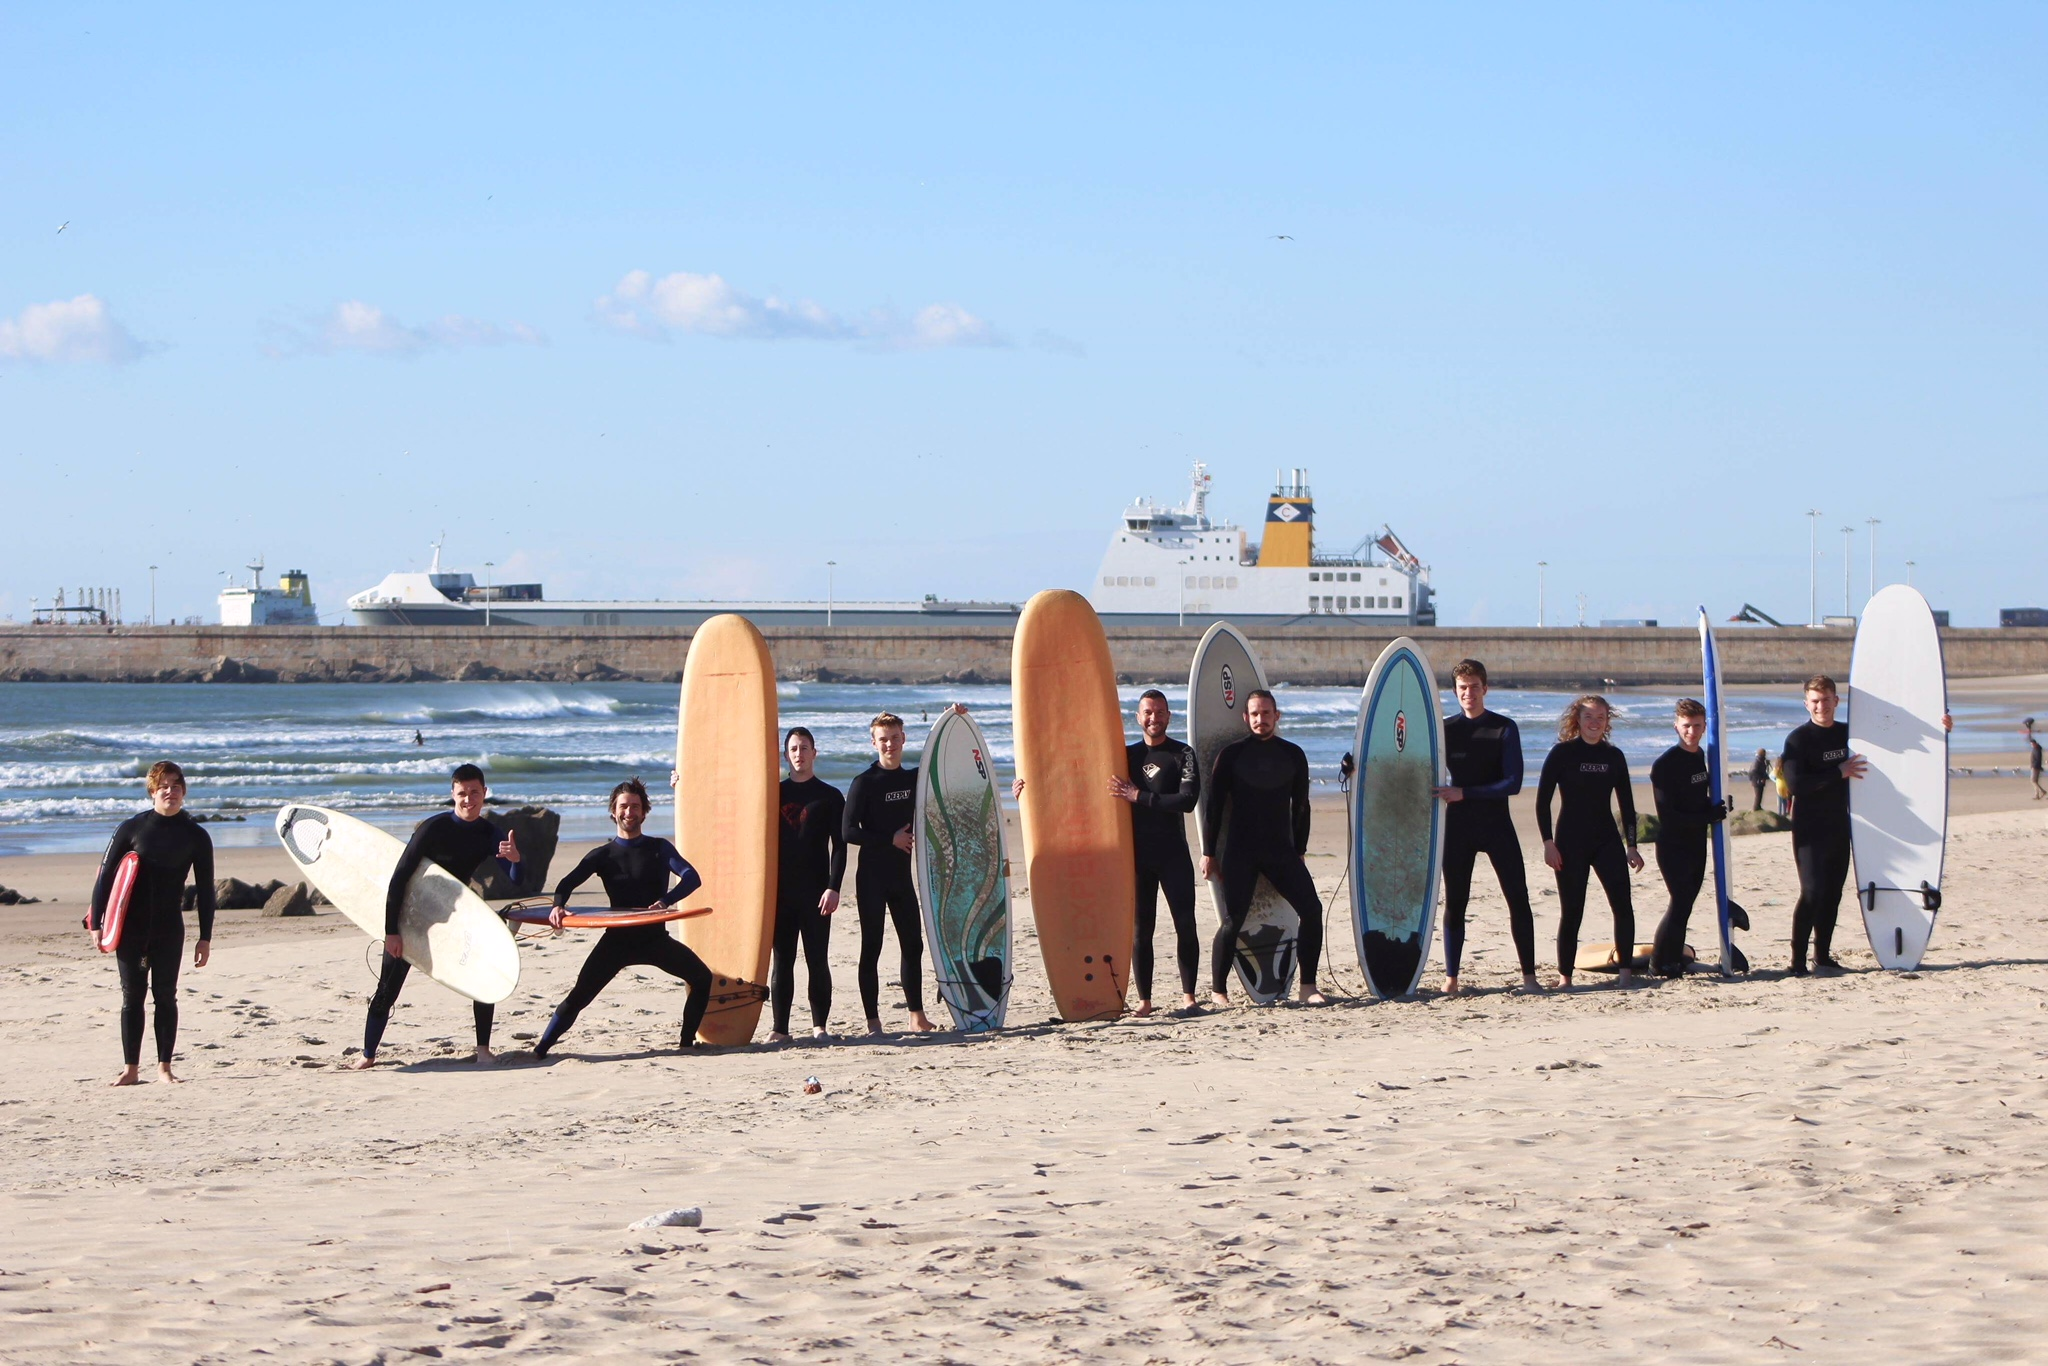 Keen Architecture students and Tutors ready for a surf in the cool February waters of Porto